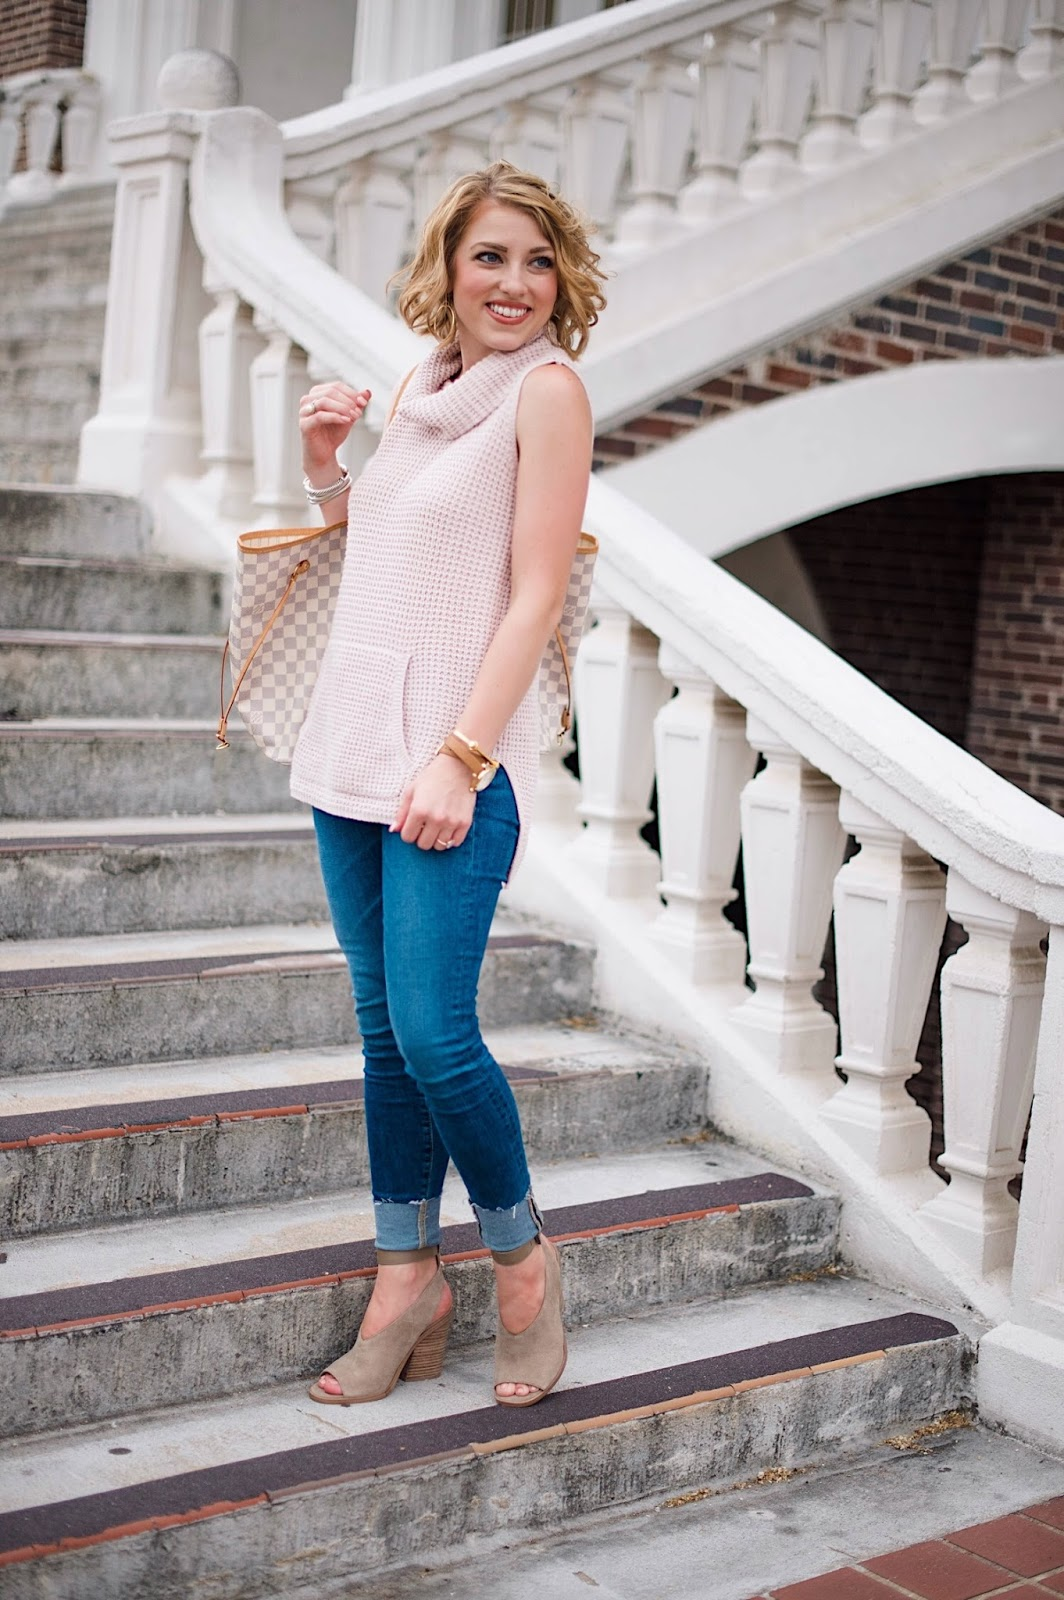 Sleeveless Sweater - Click through to see more on Something Delightful Blog!